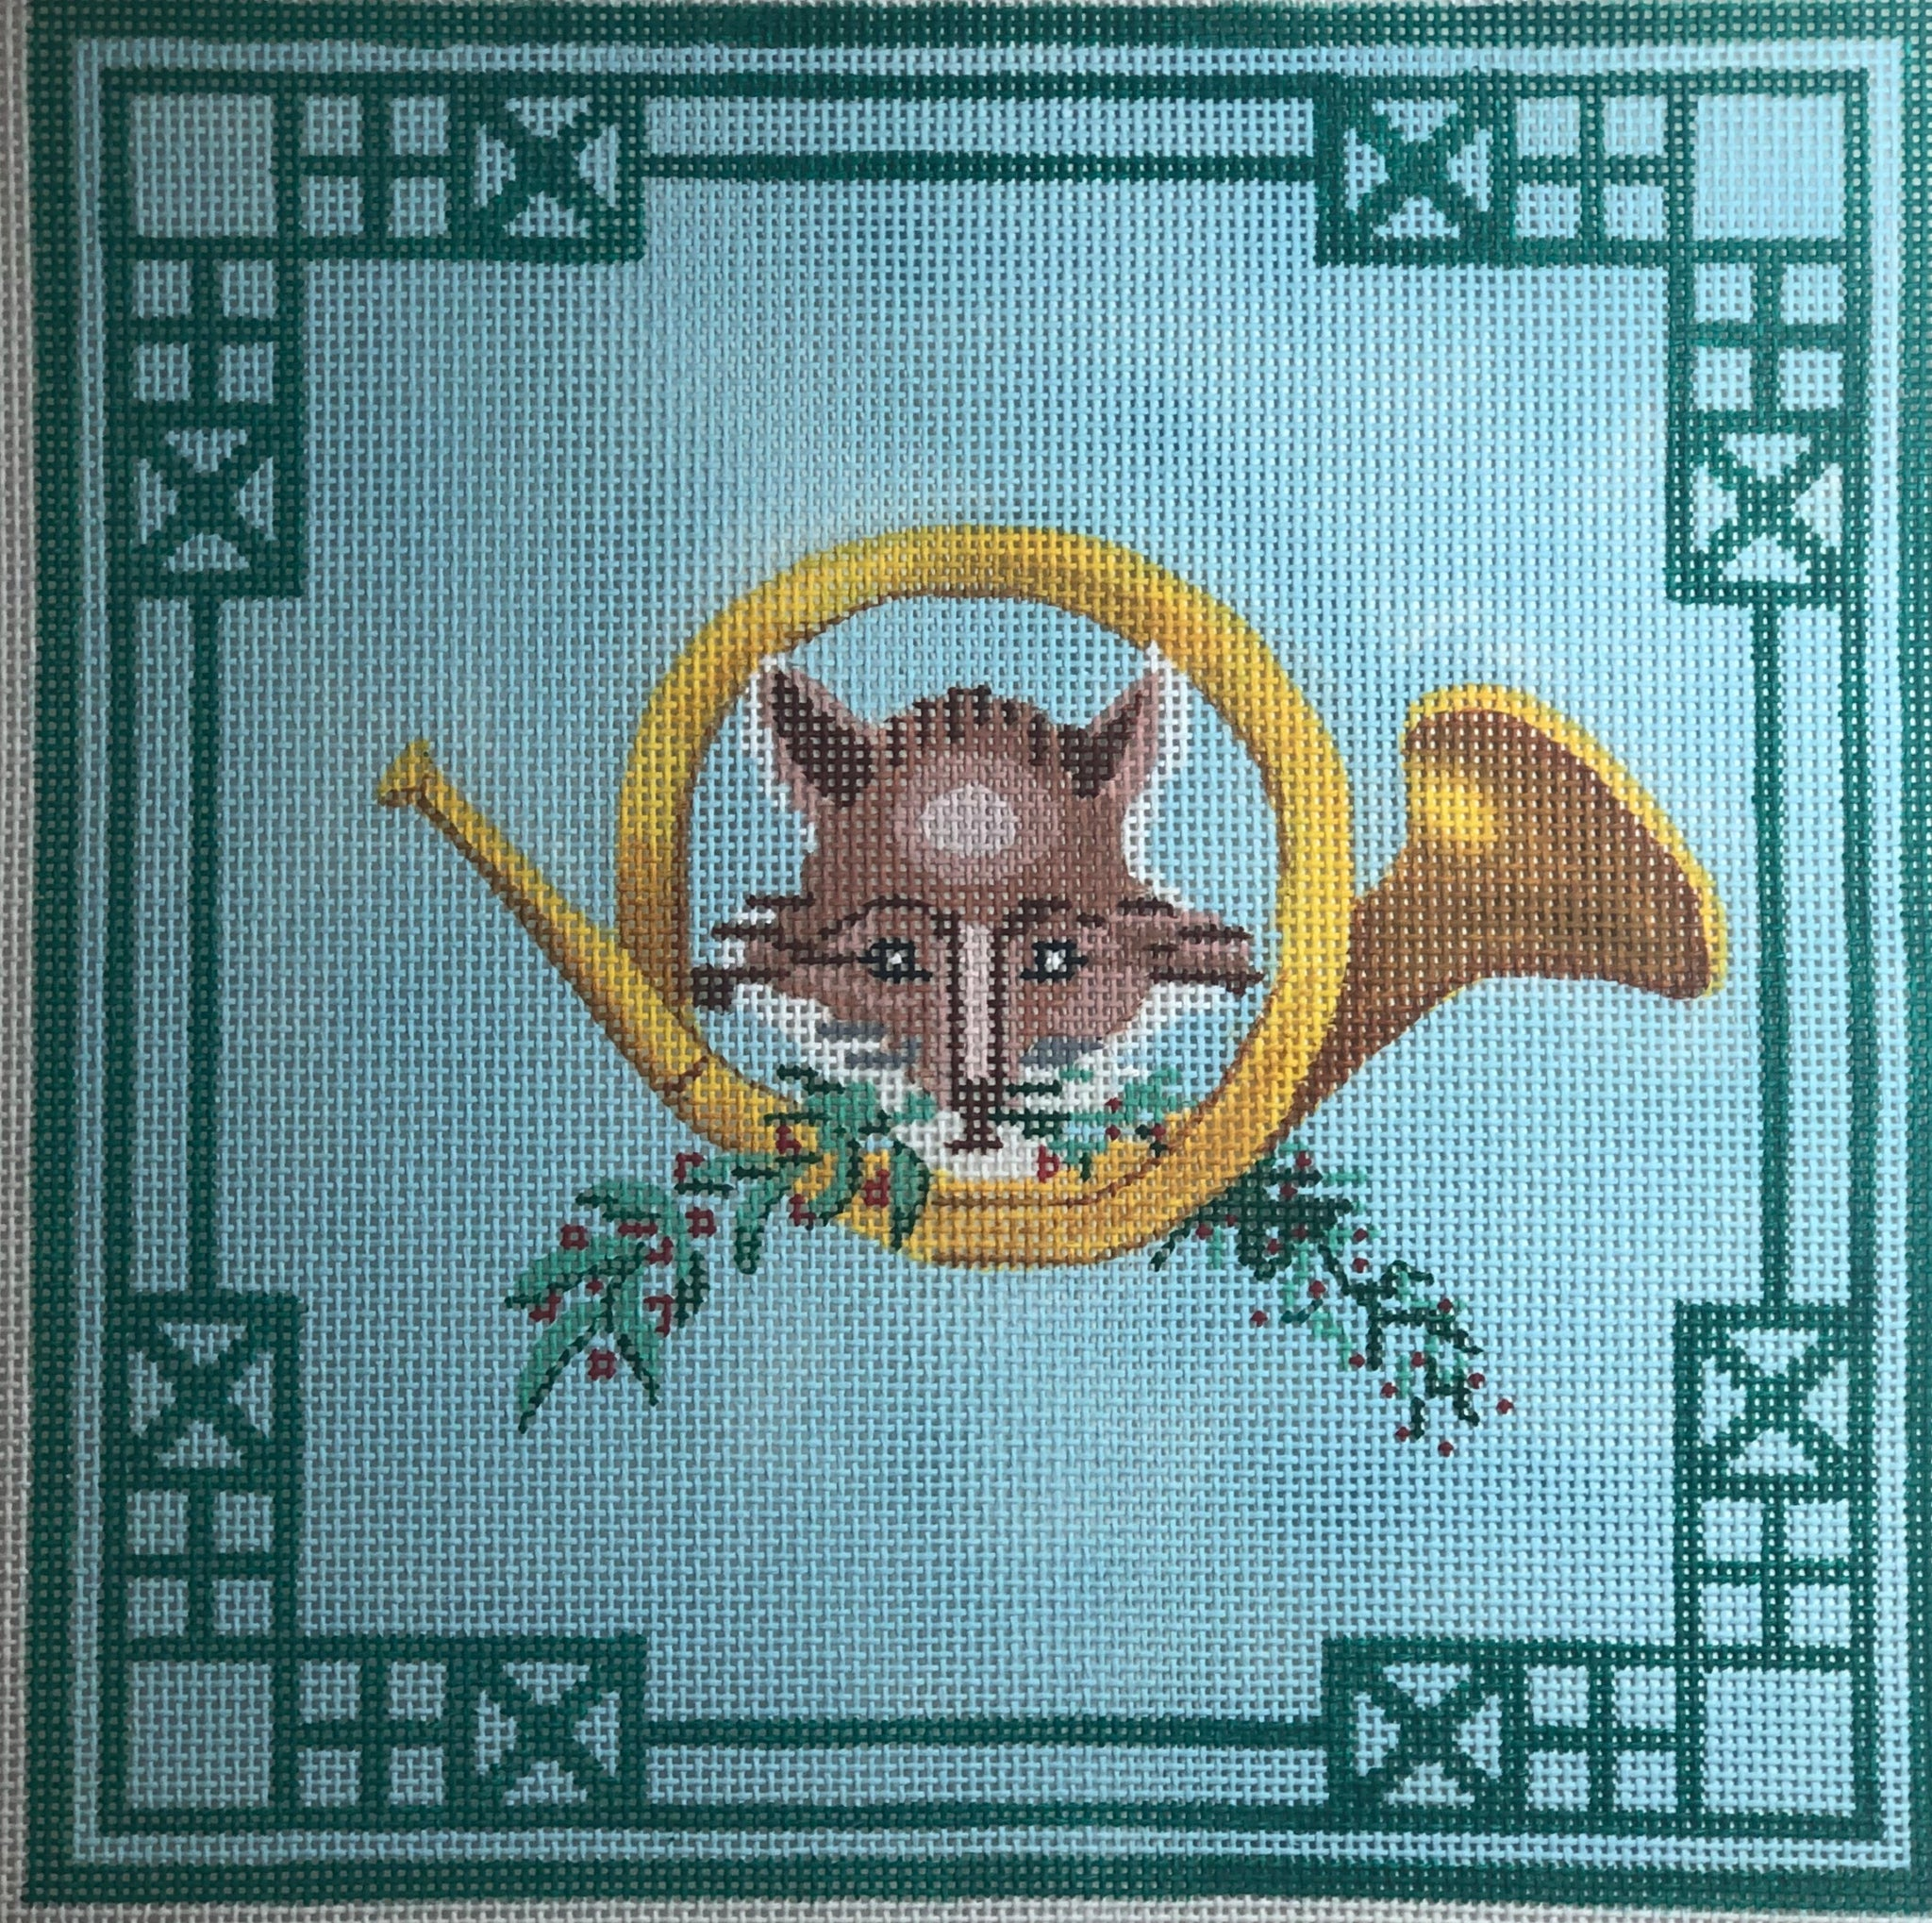 Fox & Hunting Horn w/ Greenery & Chinoiserie Border